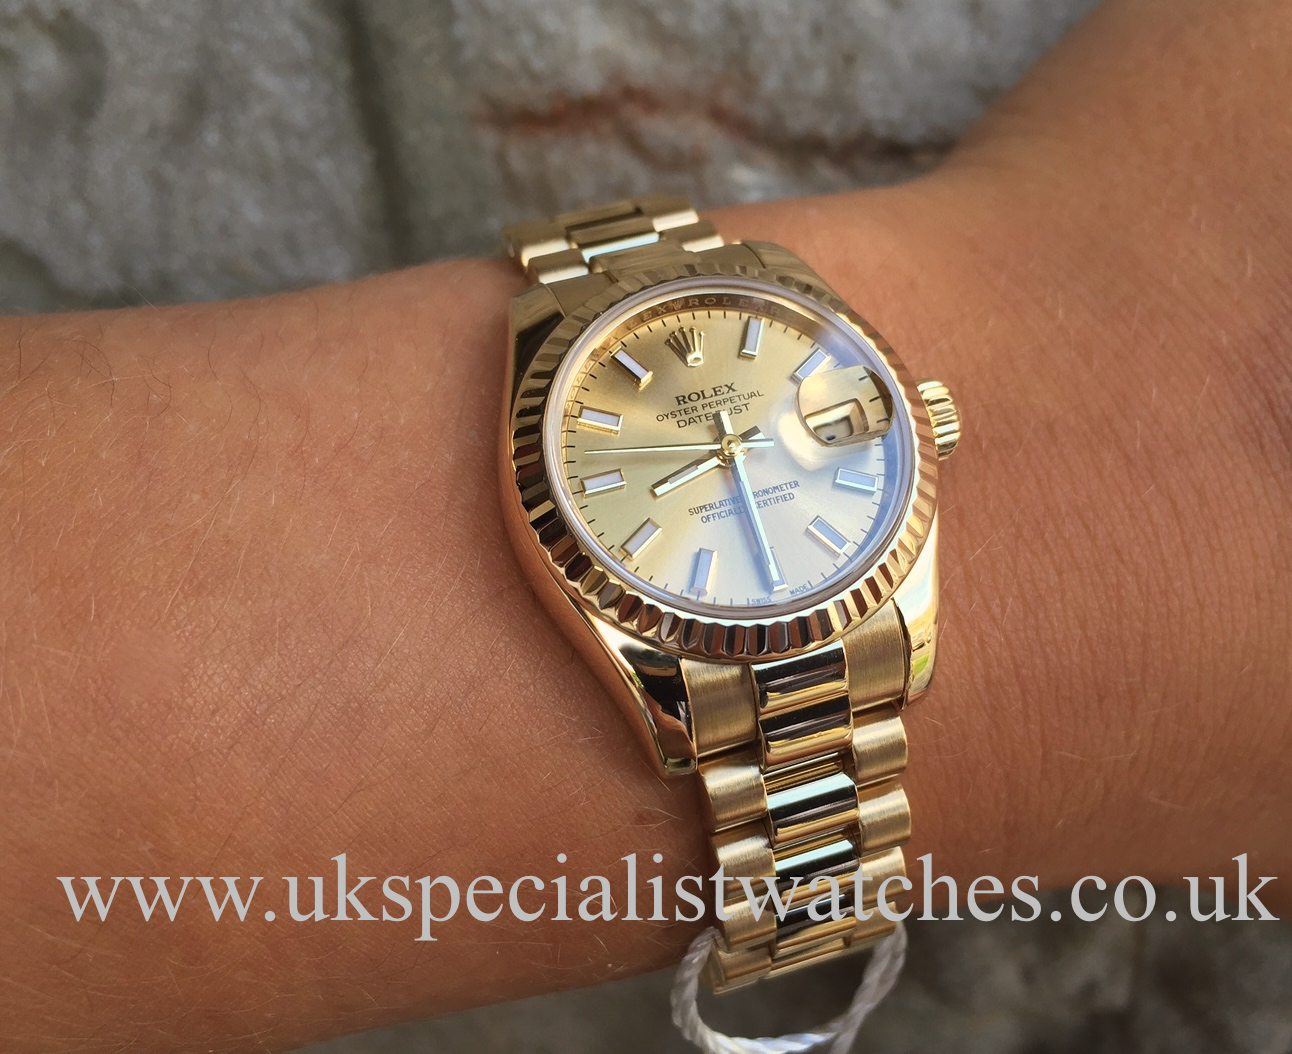 39a0ed3da00 UK Specialist Watches have a ladies solid 18ct Yellow Gold 26mm Datejust  President full set -